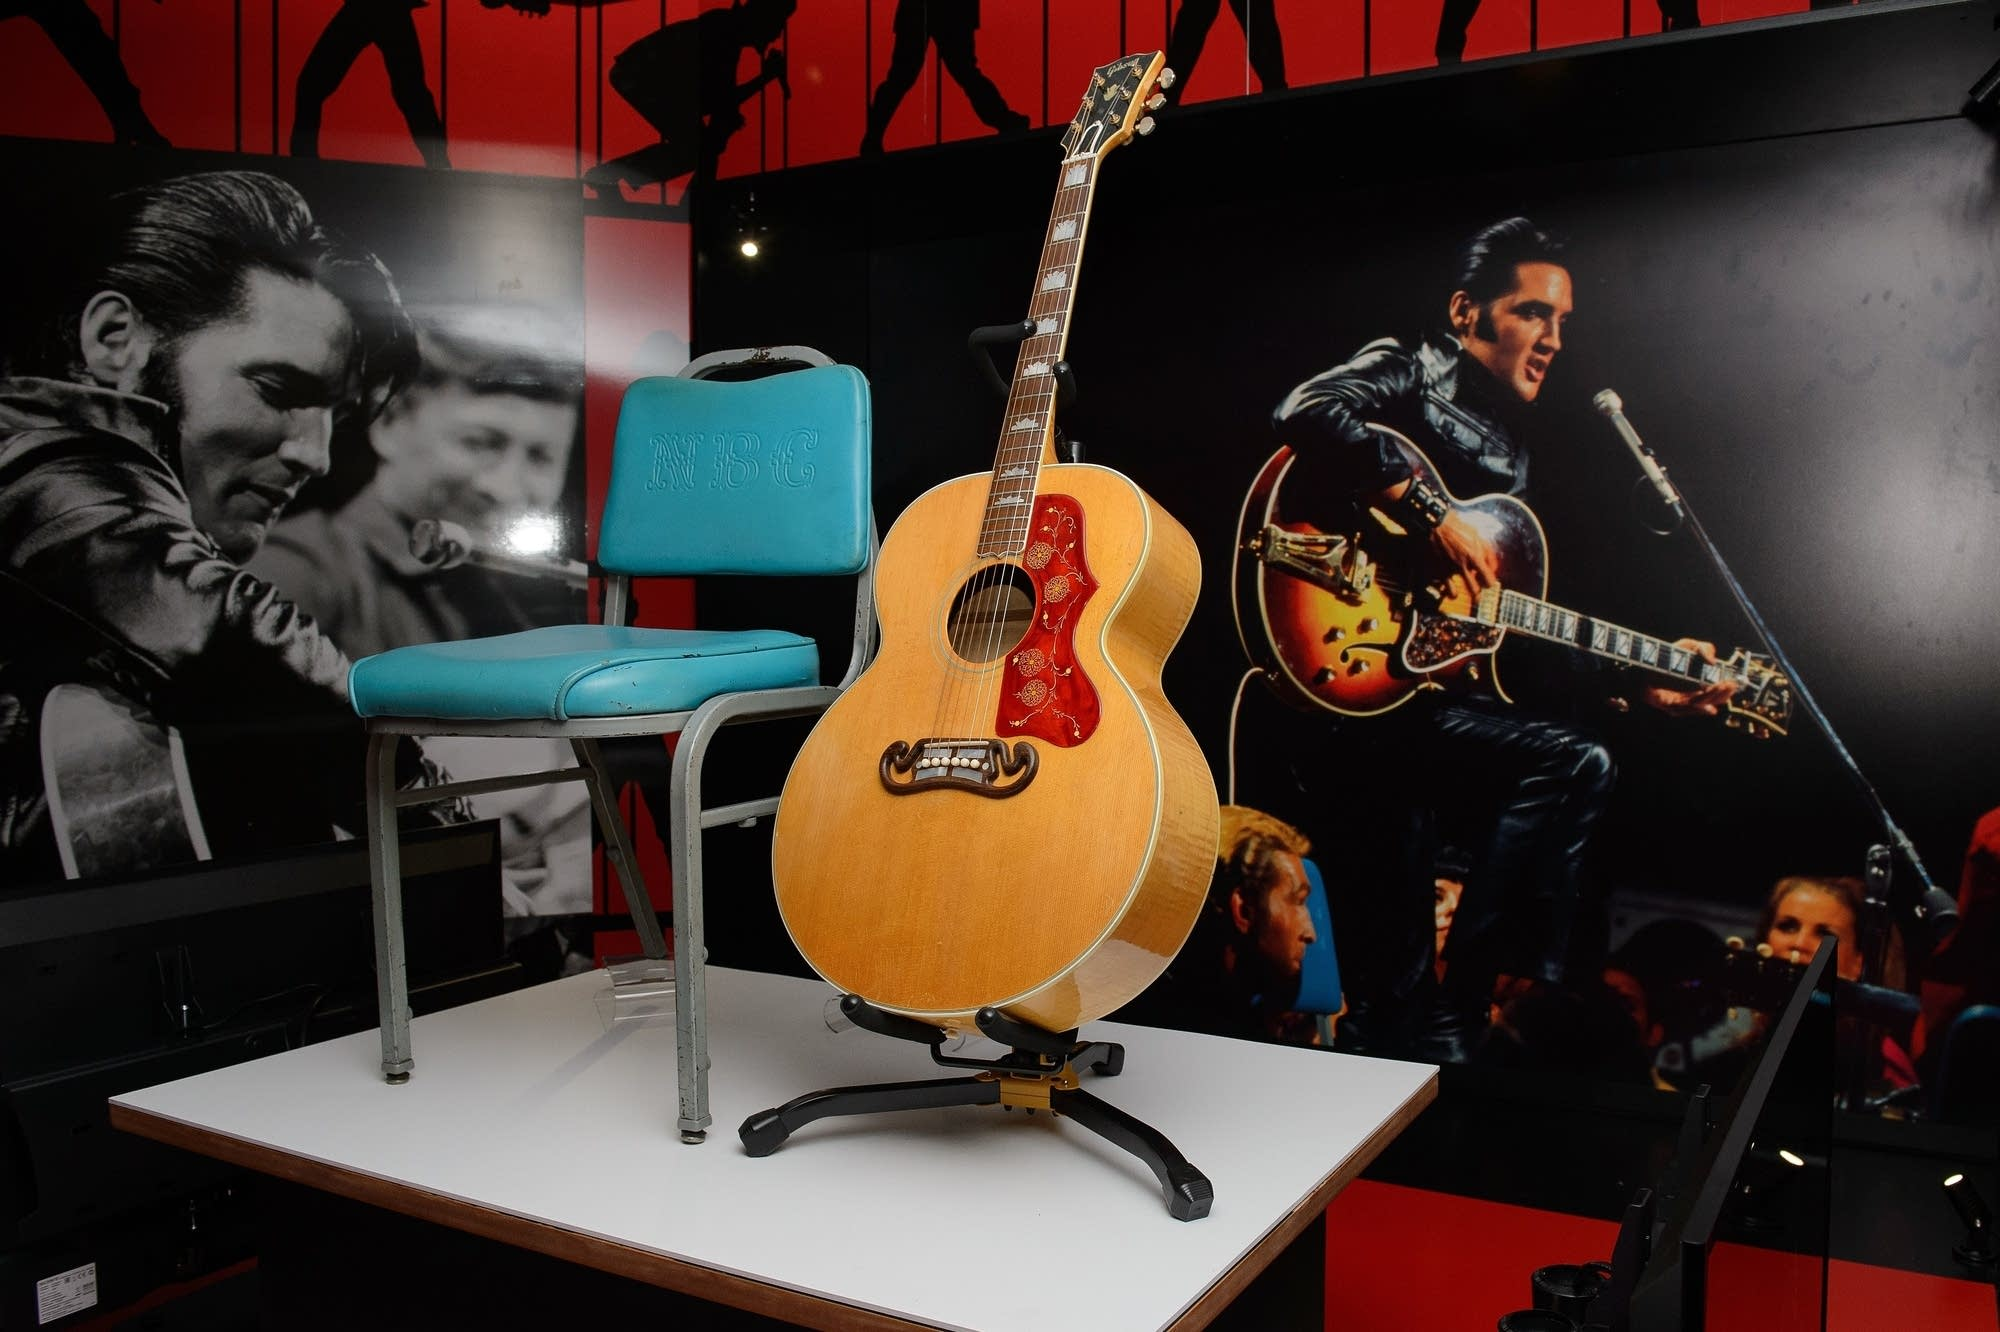 artifacts from Elvis Presley's '68 Comeback Special